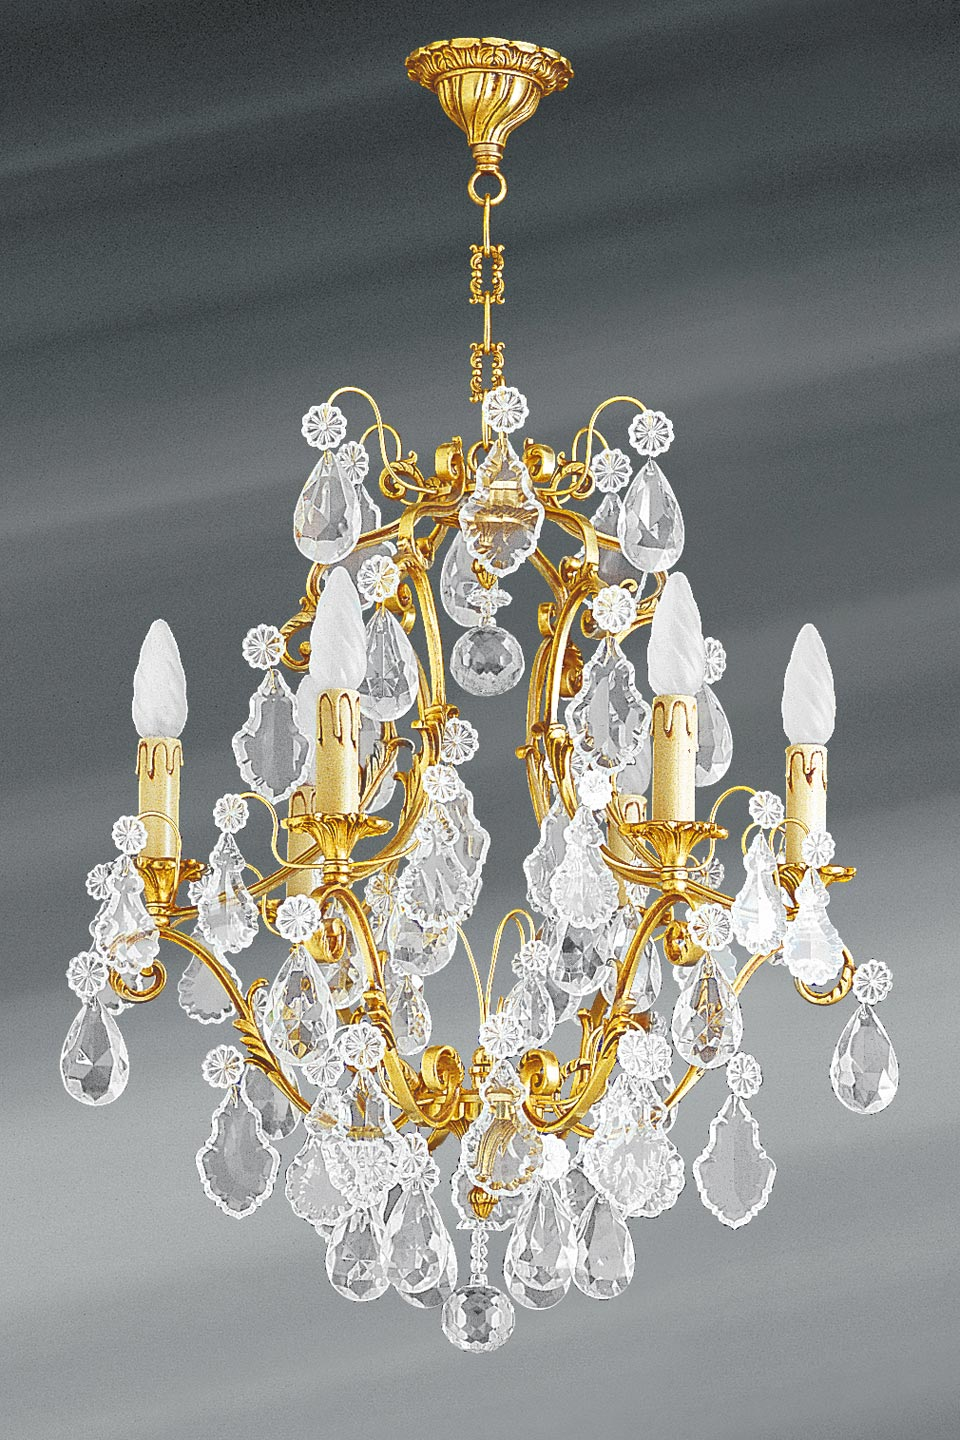 lustre dor louis xv cristal de boh me six lumi res lucien gau luminaires classiques de. Black Bedroom Furniture Sets. Home Design Ideas